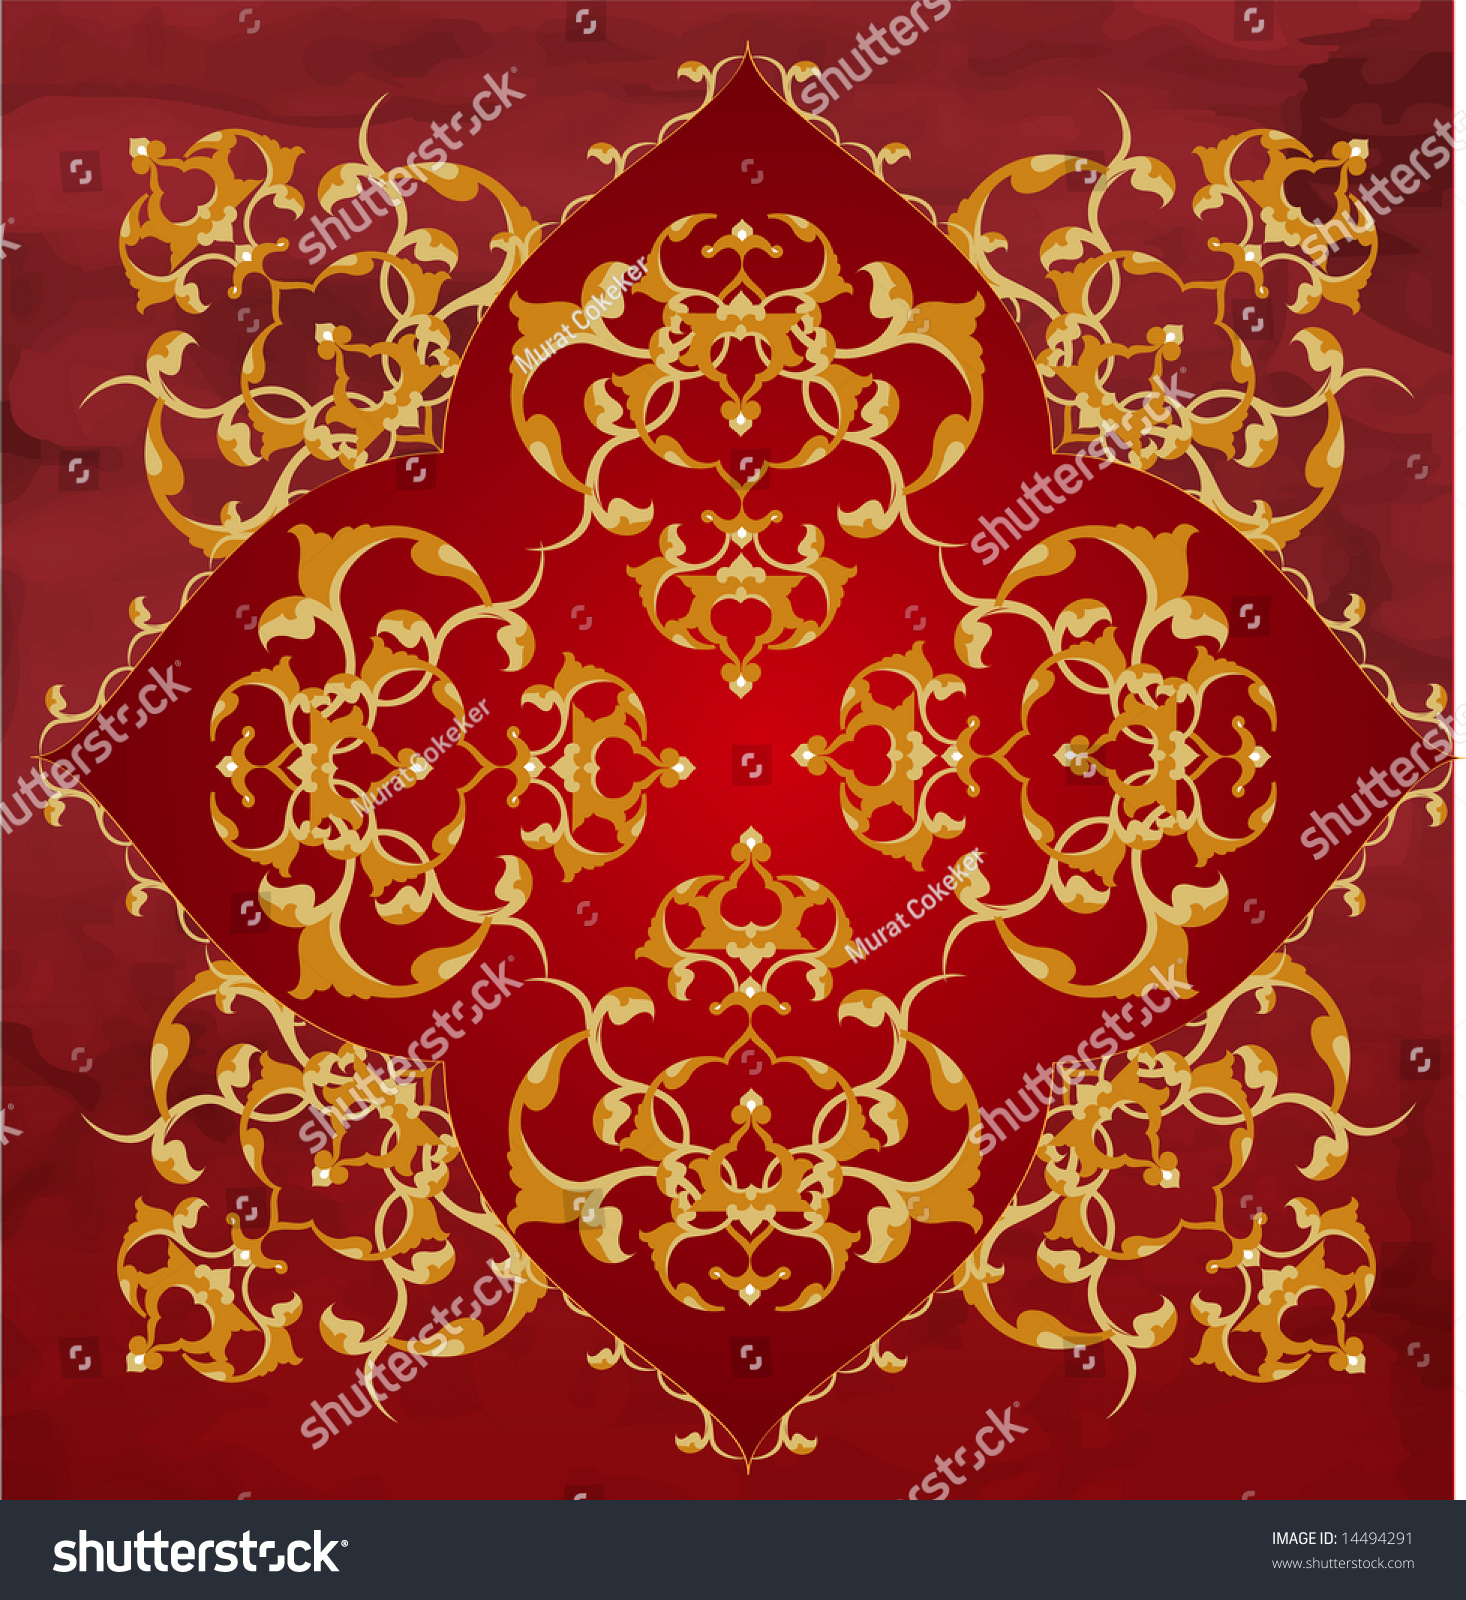 Turkish Design Wallpaper : Antique ottoman turkish wallpaper illustration design